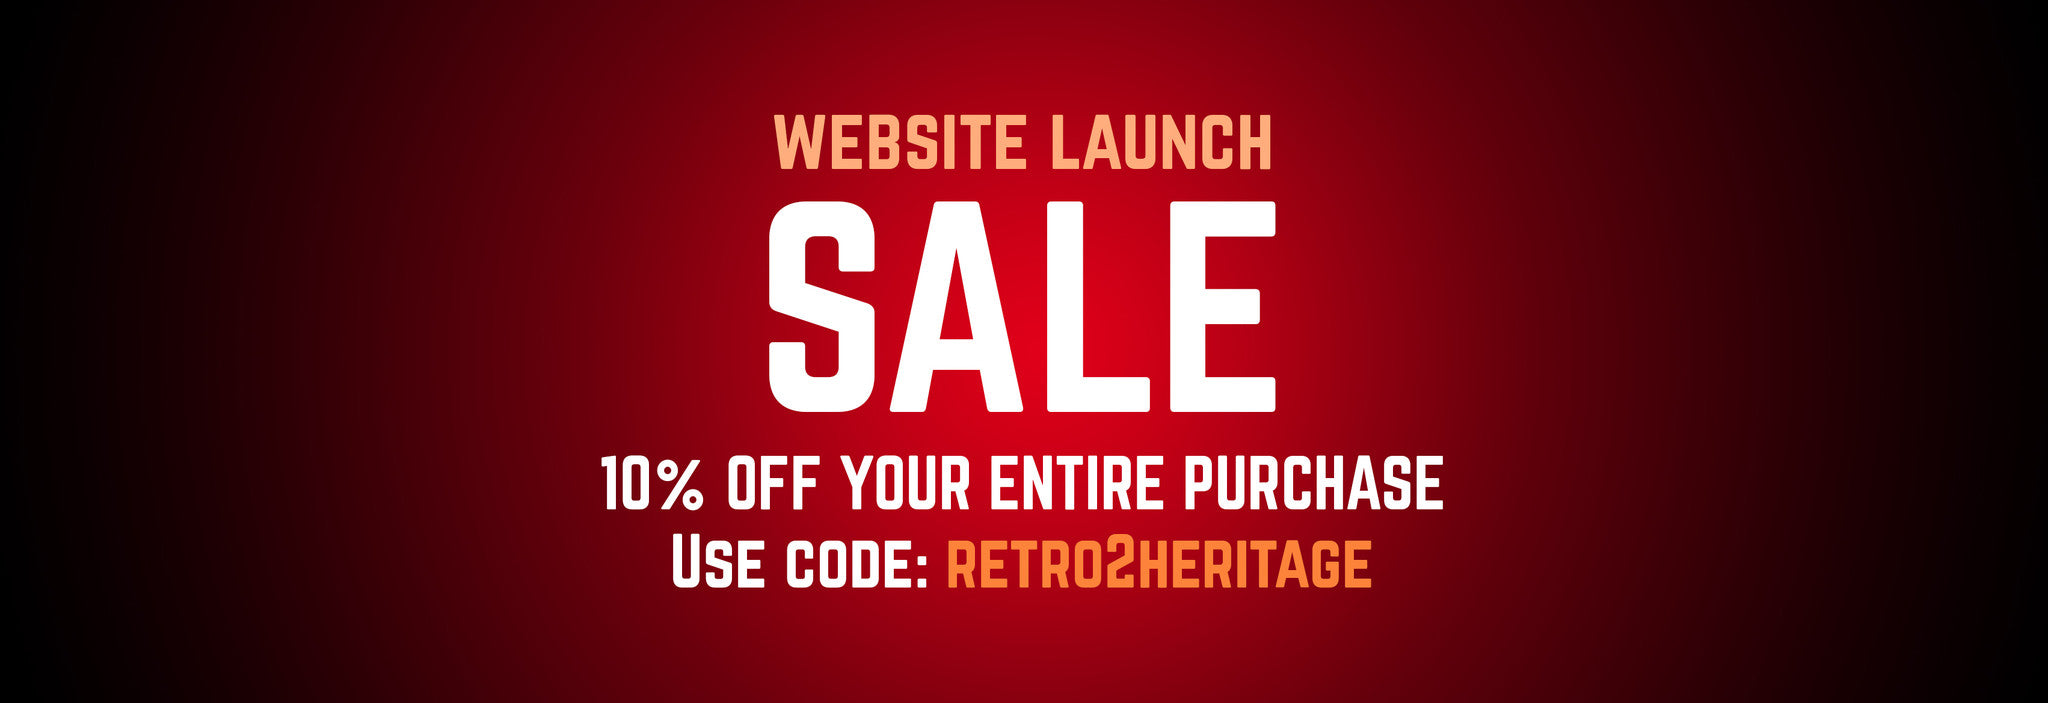 Website Launch - 10% Entire Purchase with Code: RETRO2HERITAGE